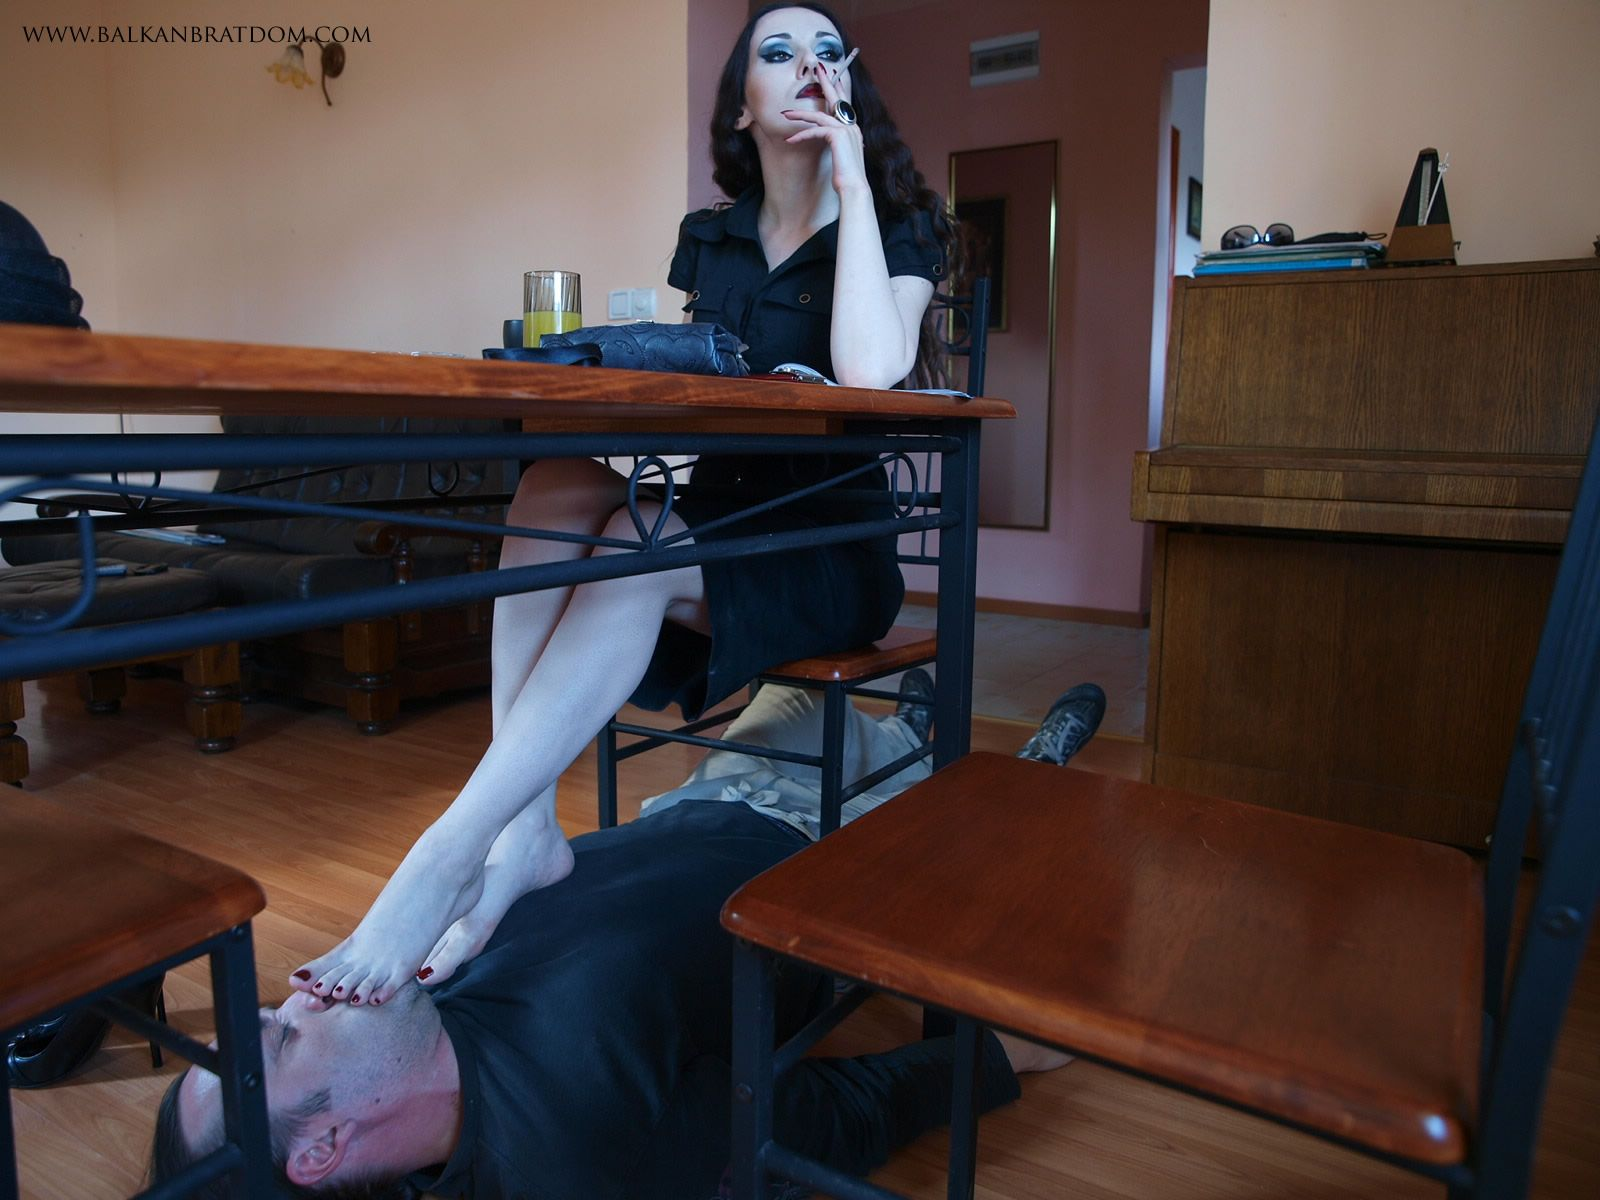 And I Want  Female Footdomination  Pinterest  Female Supremacy, Women Smoking And Latex-7722